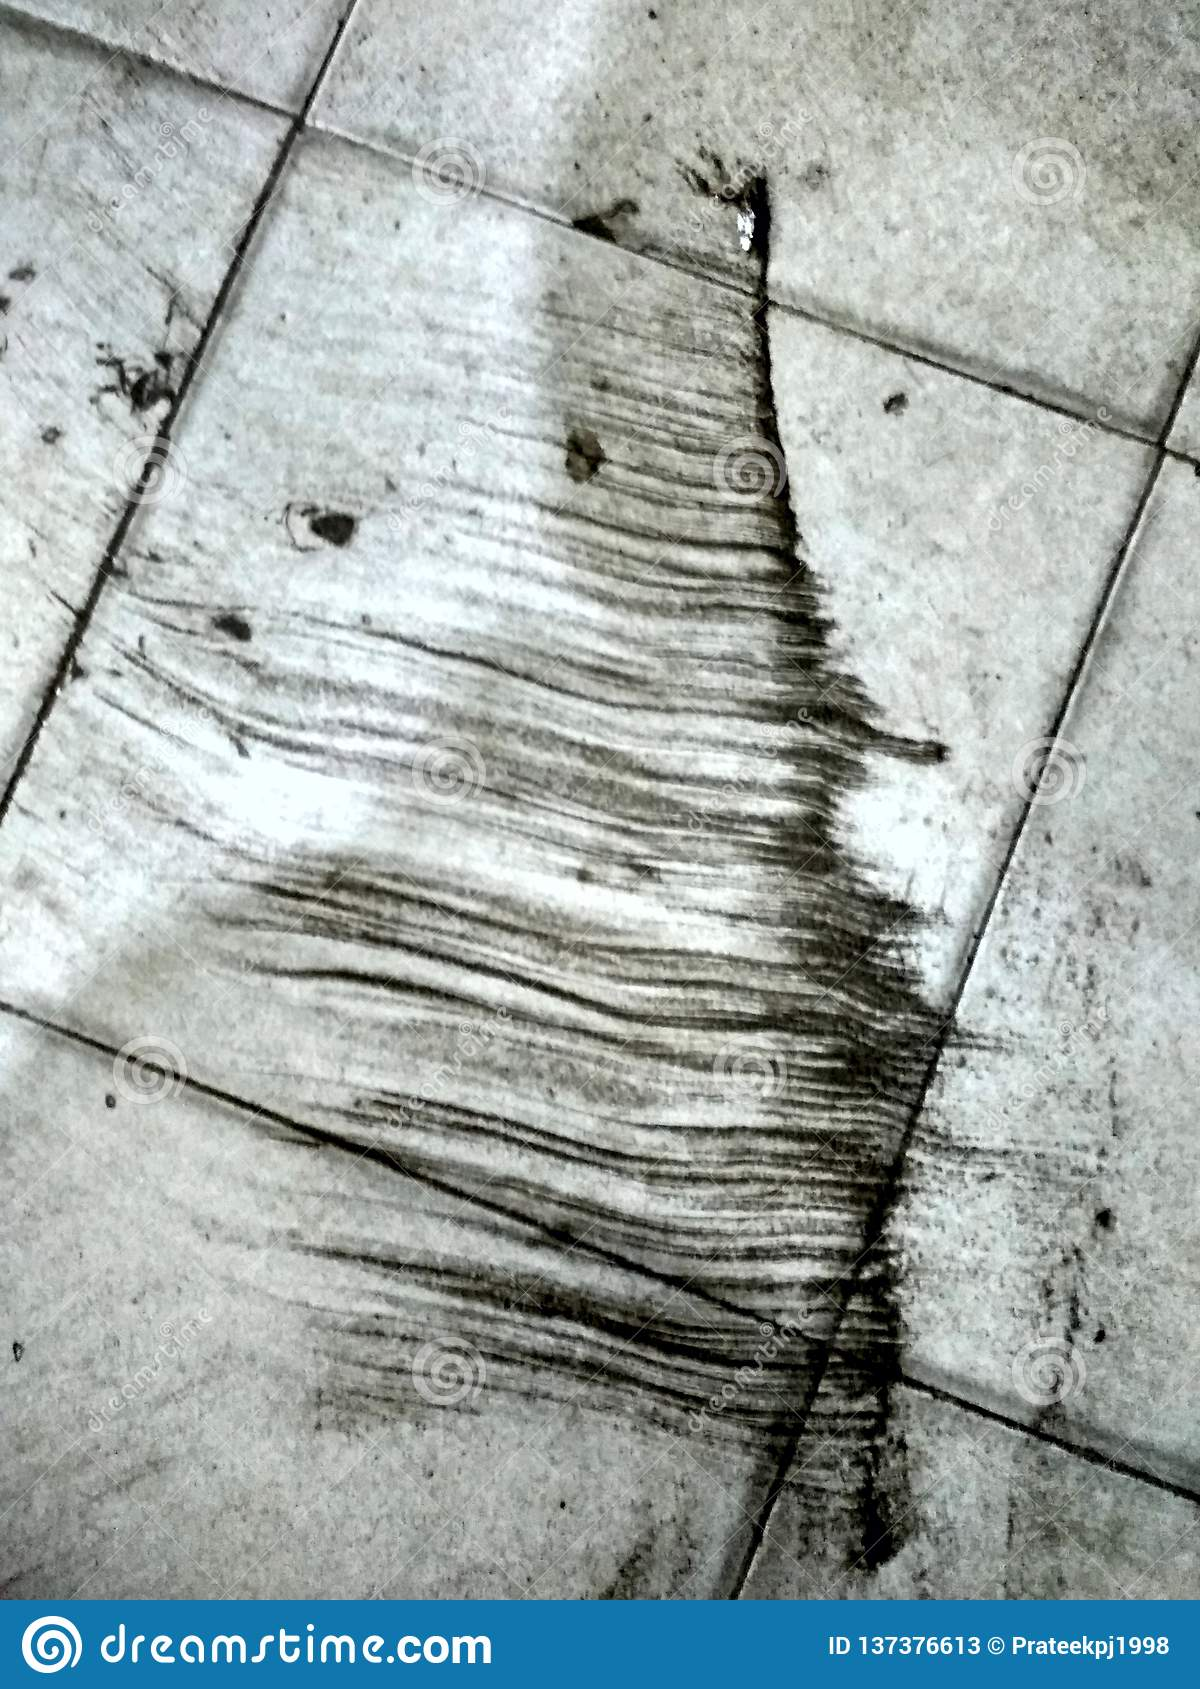 Marble texture in natural pattern, stone floor. Decorative, gray.